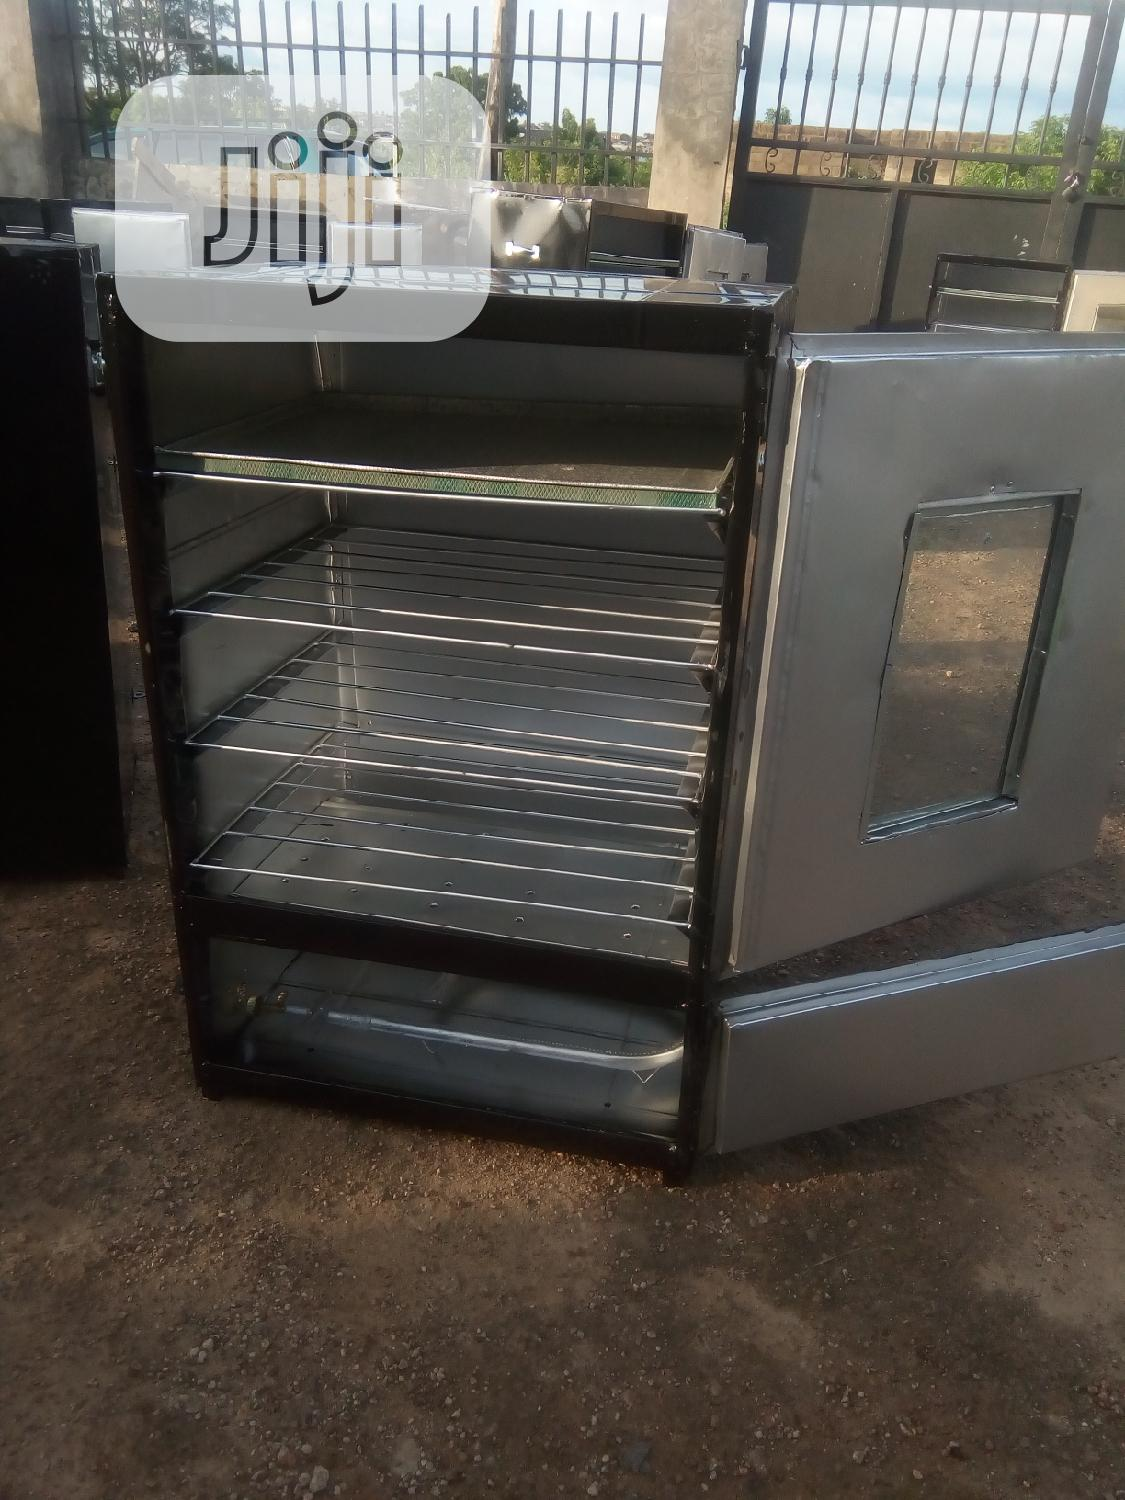 Easytech Charcoal And Gas Oven Enterprises   Industrial Ovens for sale in Warri, Delta State, Nigeria